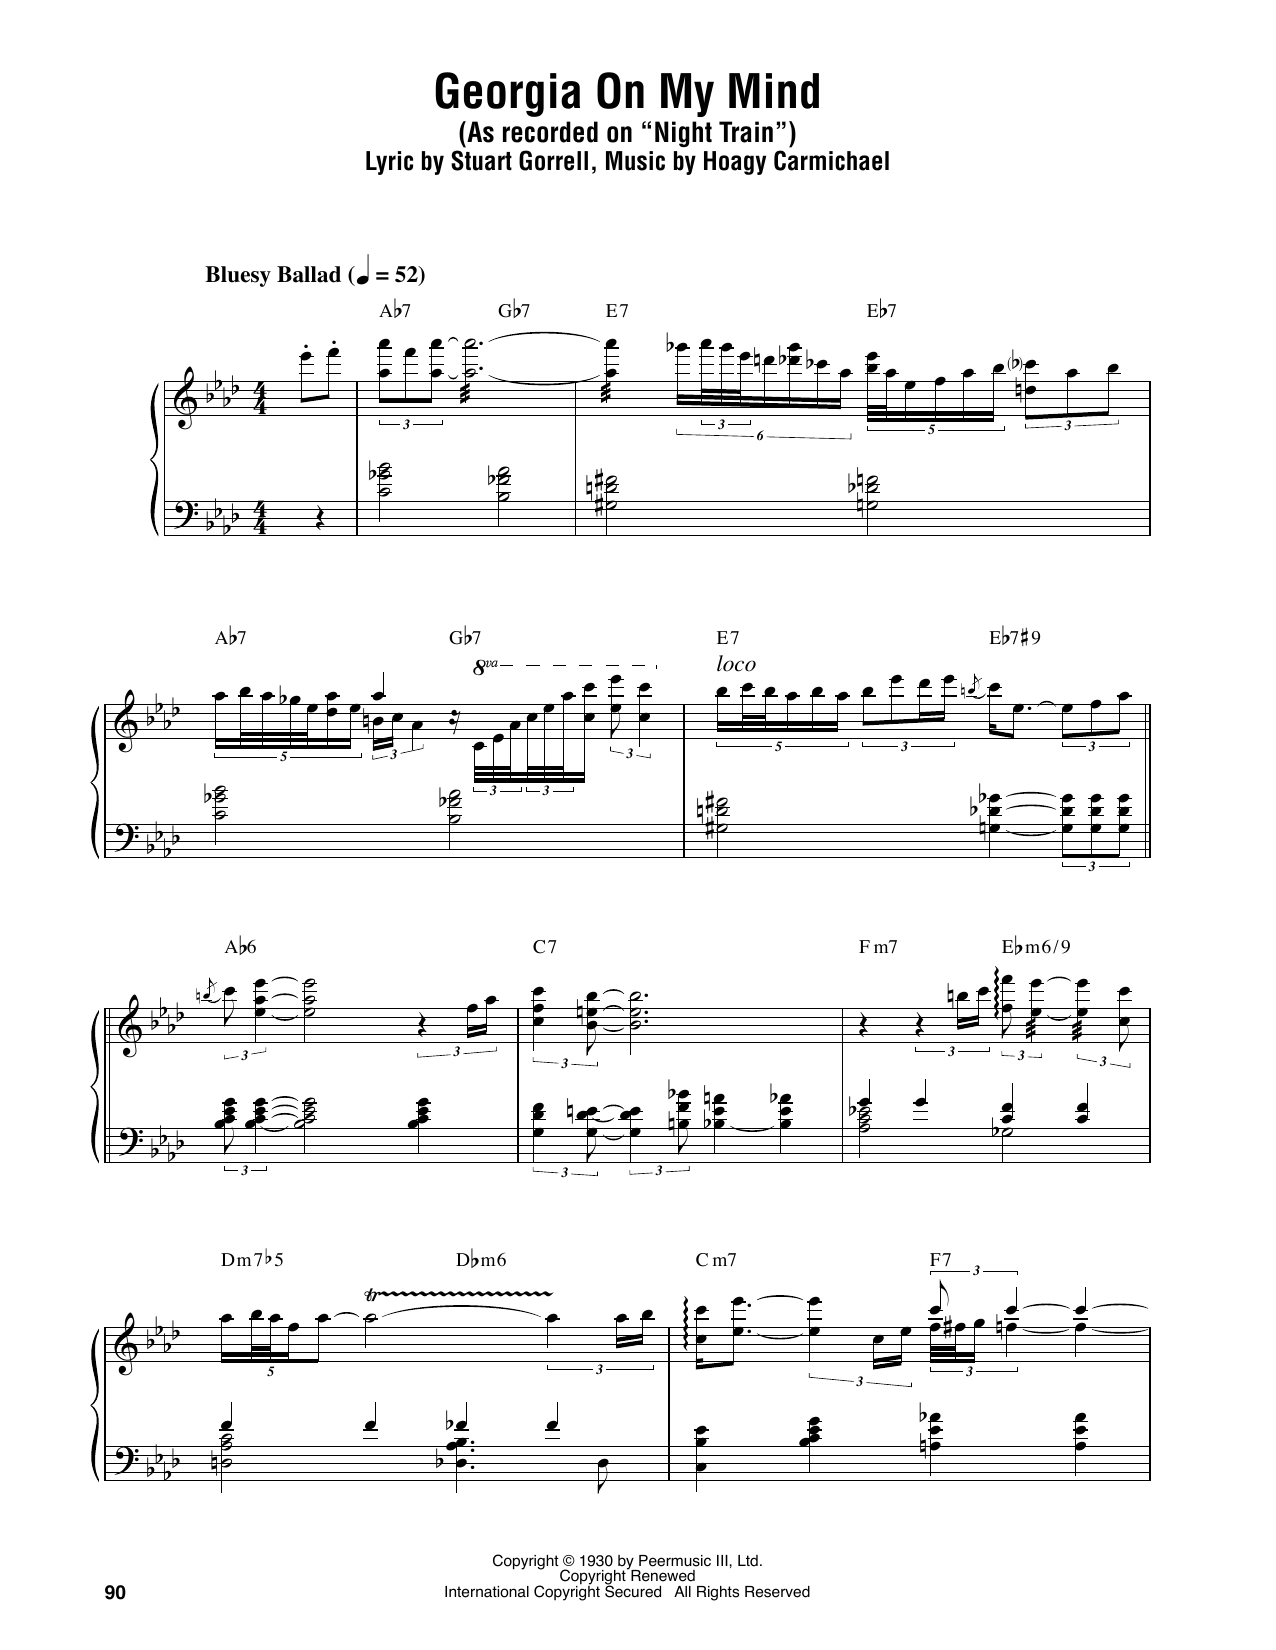 Georgia on my mind sheet music by oscar peterson piano georgia on my mind sheet music hexwebz Image collections